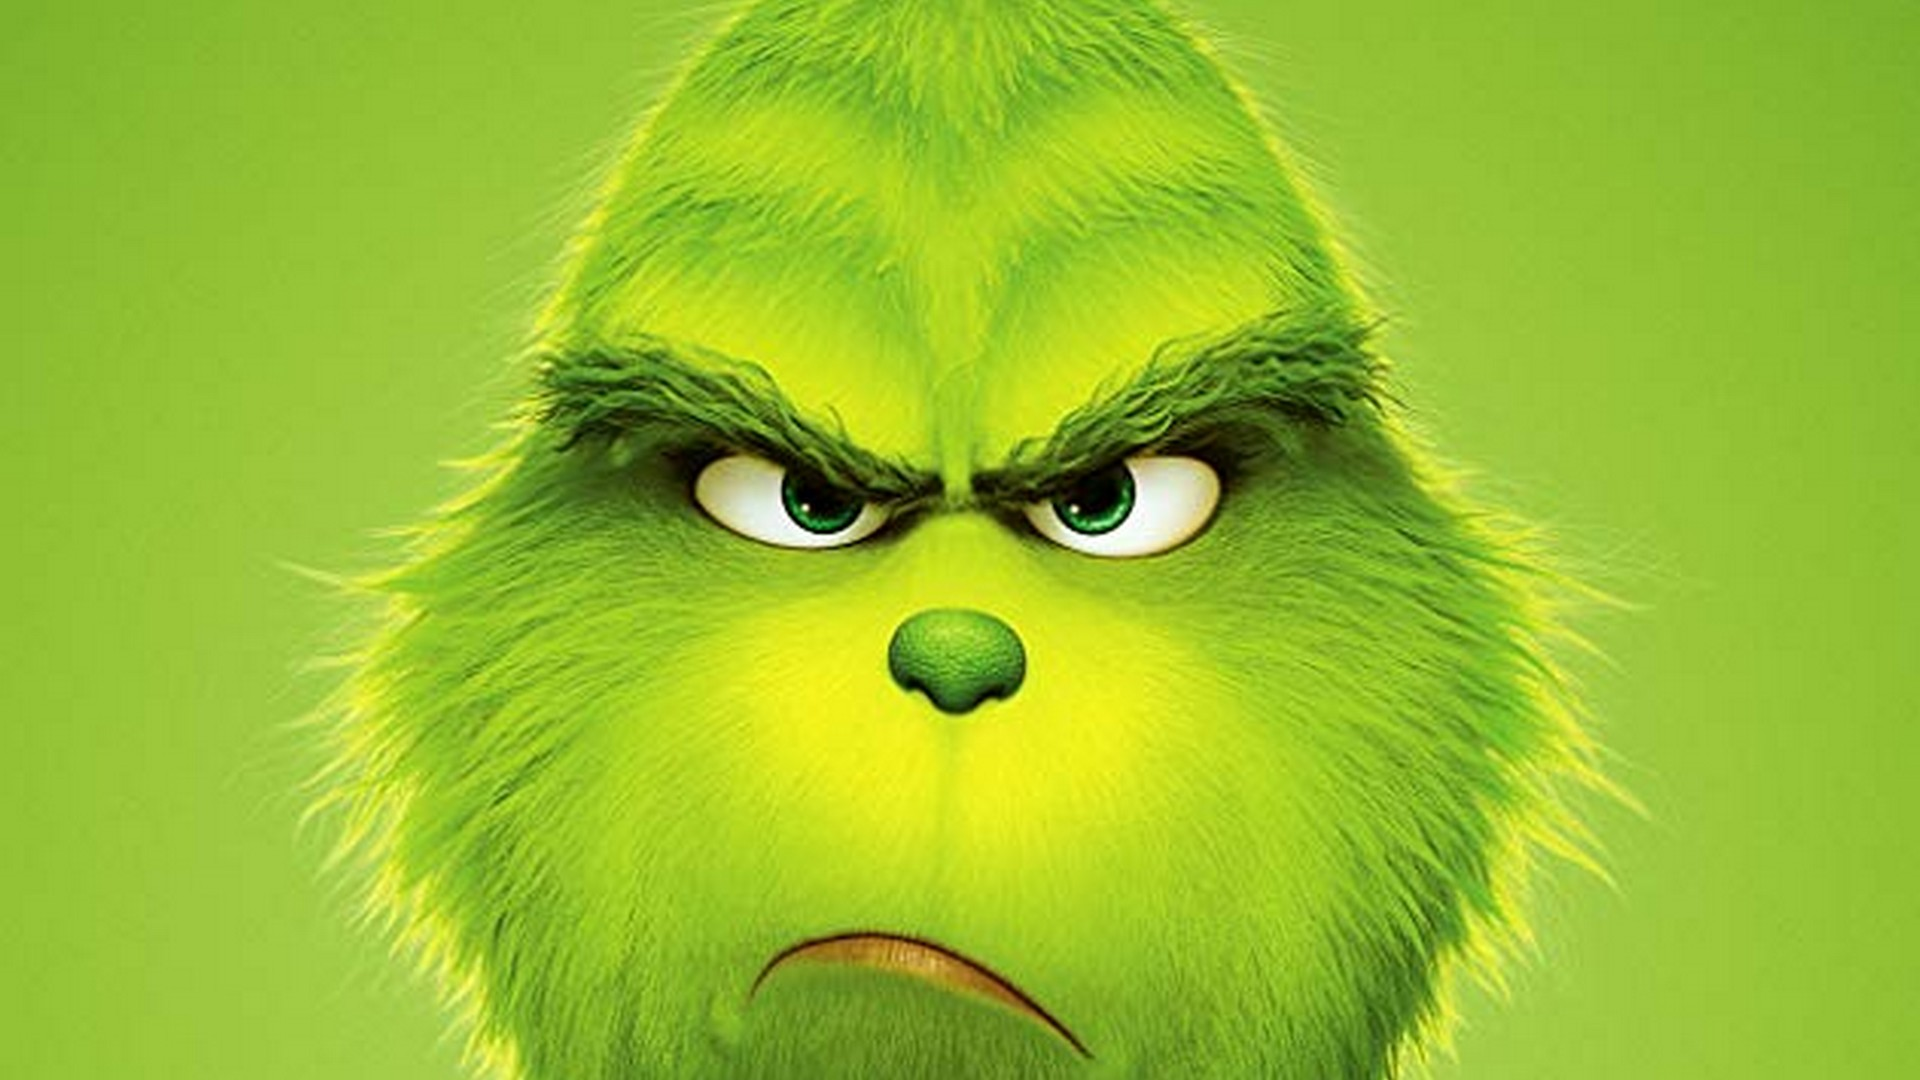 The Grinch Poster Wallpaper 2020 Movie Poster Wallpaper HD 1920x1080